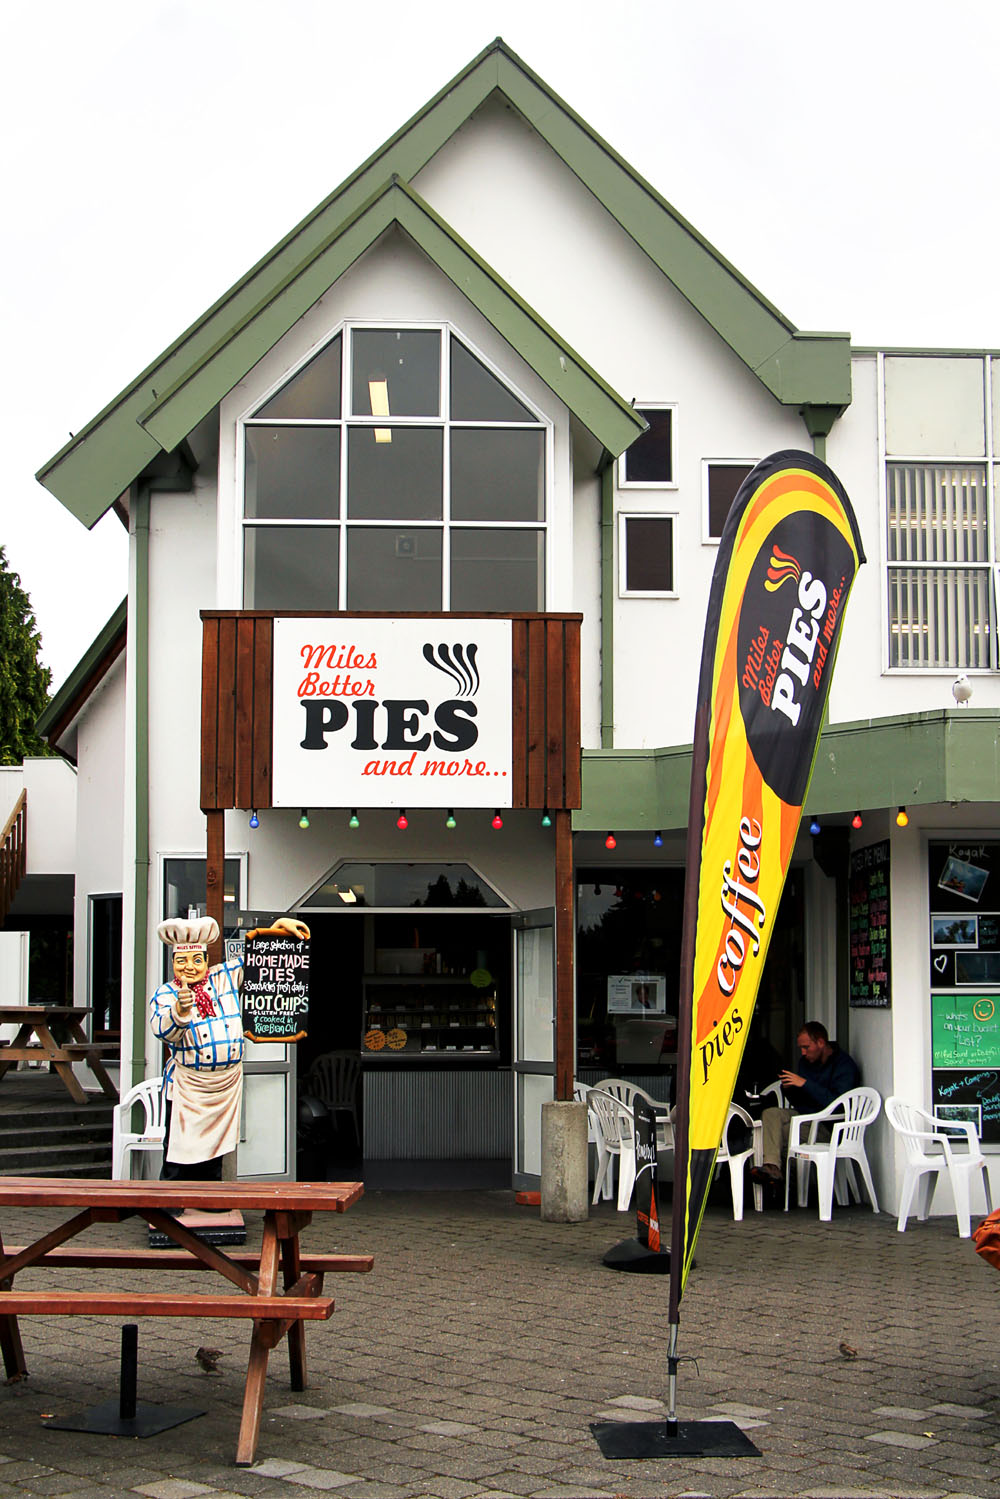 Fiordland Food Cart & Miles Better Pies @ Te Anau, New Zealand